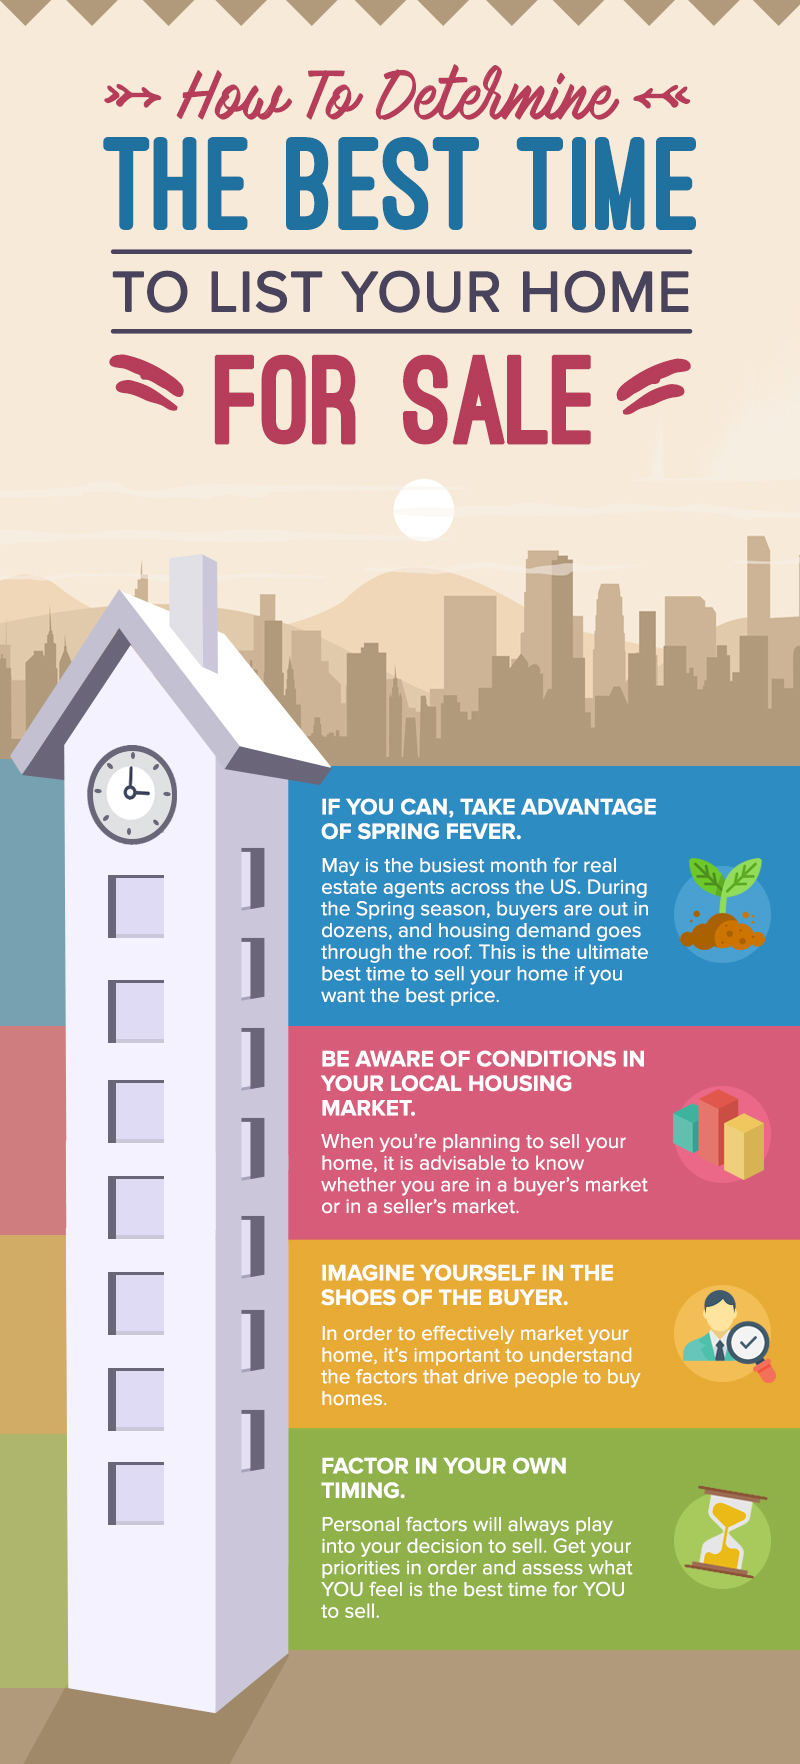 How To Determine The Best Time To List Your Home For Sale